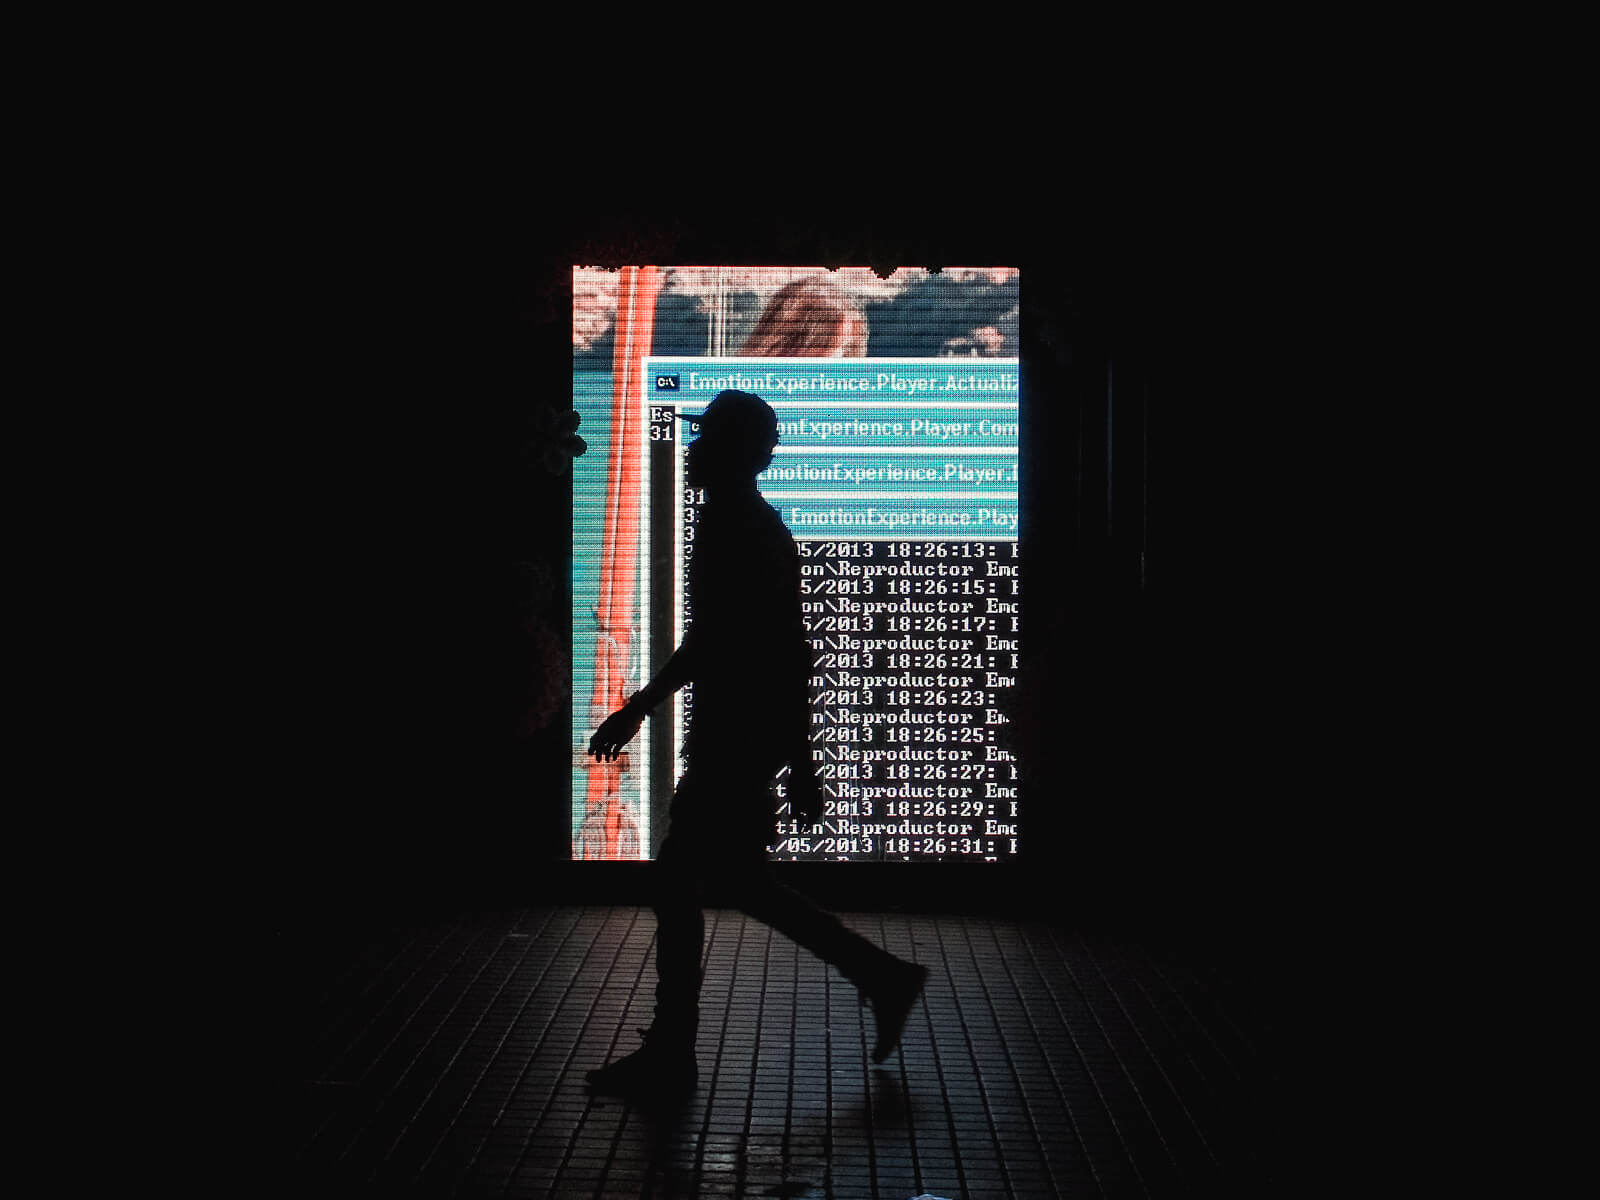 Barcelona, EmotionExperience.Player, advertising display, dos window, sidewalk silhouette walking